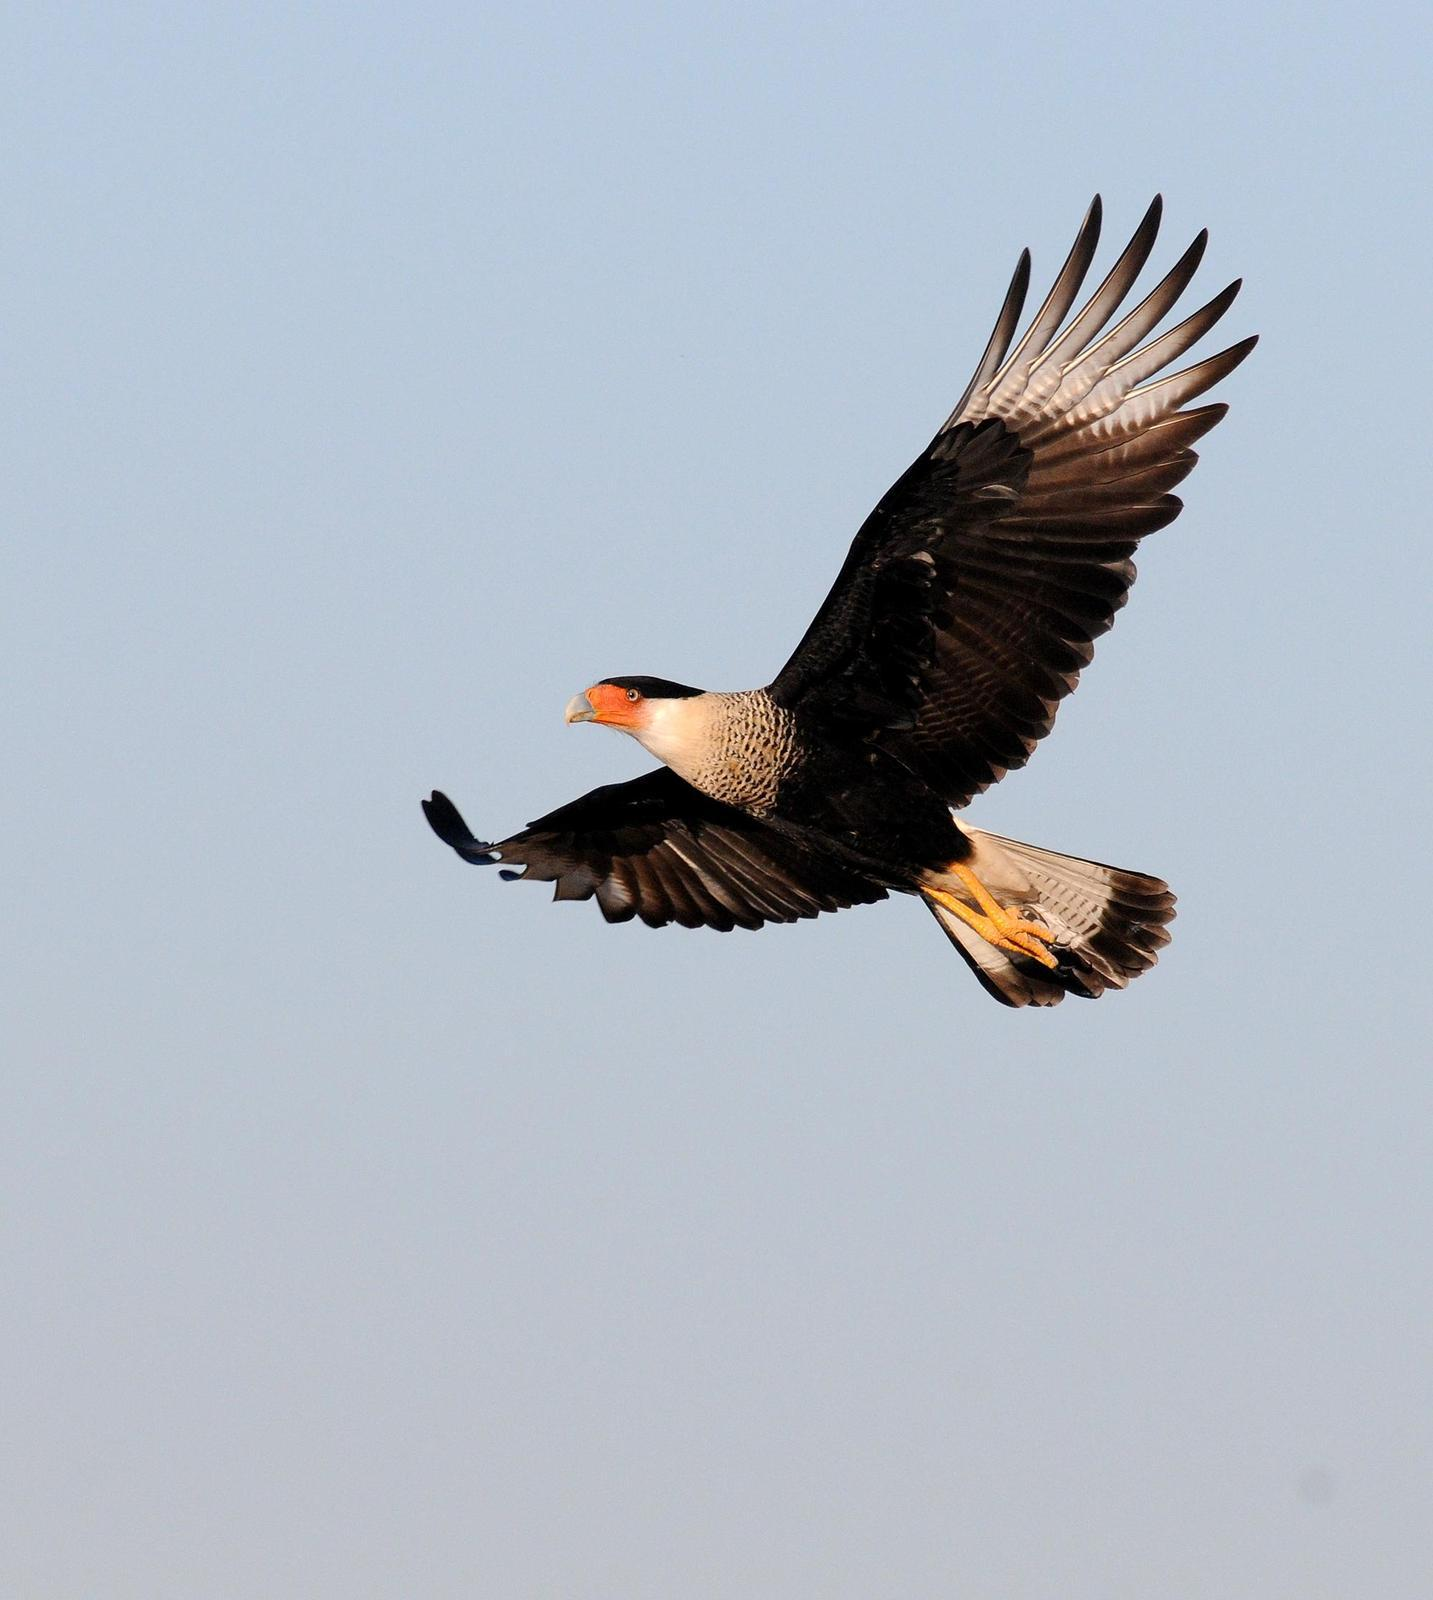 Crested Caracara Photo by Steven Mlodinow